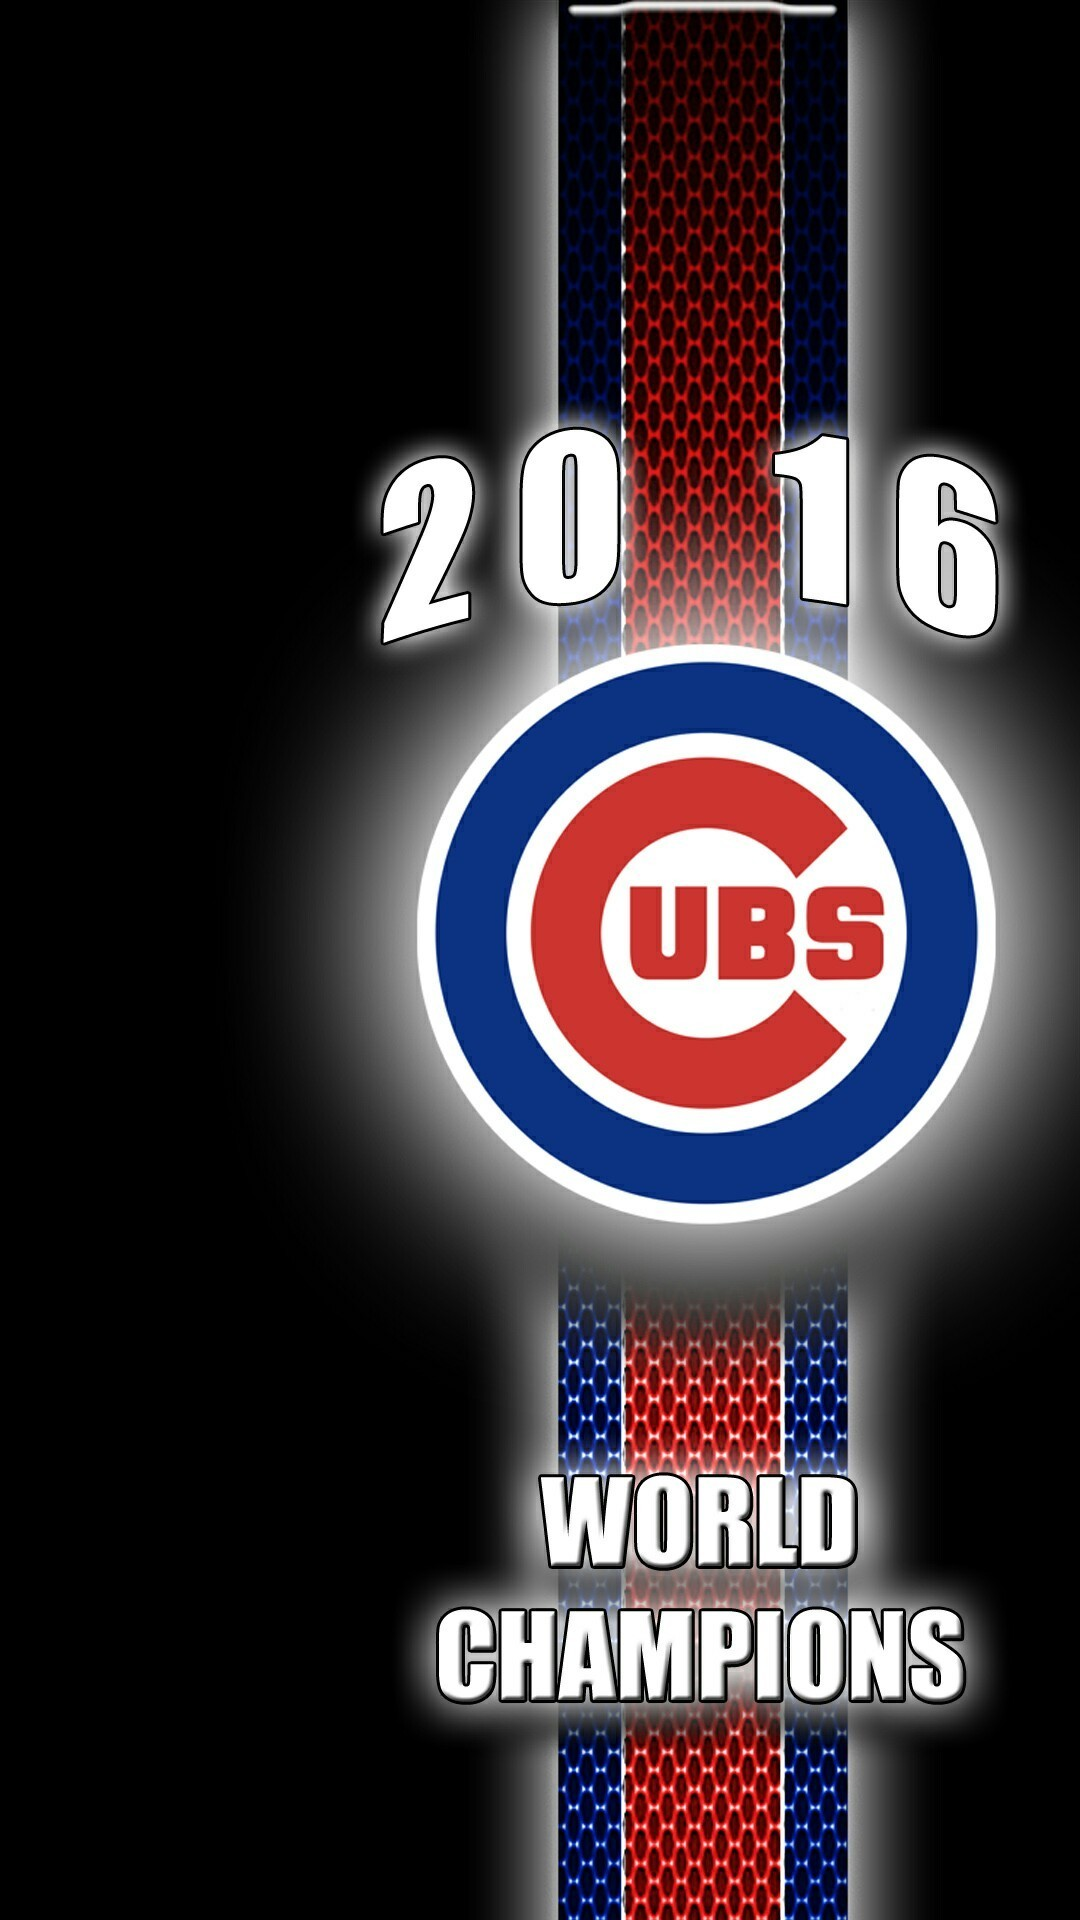 Cool chicago cubs logo wallpaper 68 images - Cubs background ...